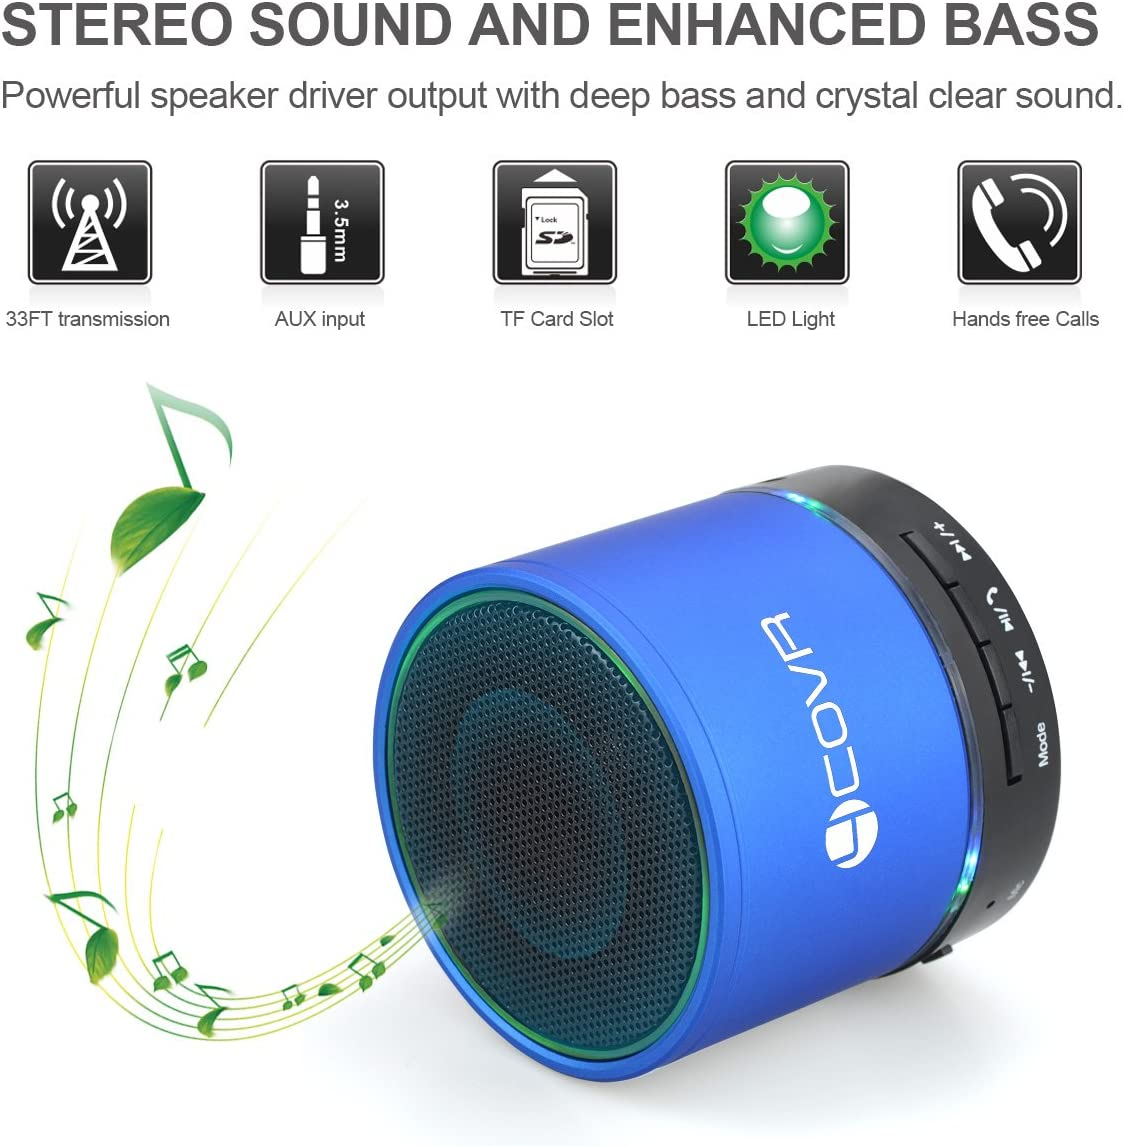 Bluetooth Speaker Wireless, Forcovr Mini Stereo Speakers Portable with HD Sound and Bass, Handsfree Call, AUX Input Jack for TV, Computer, Outdoor Small Speakers V4.2 for Travel Hiking,Camping Blue